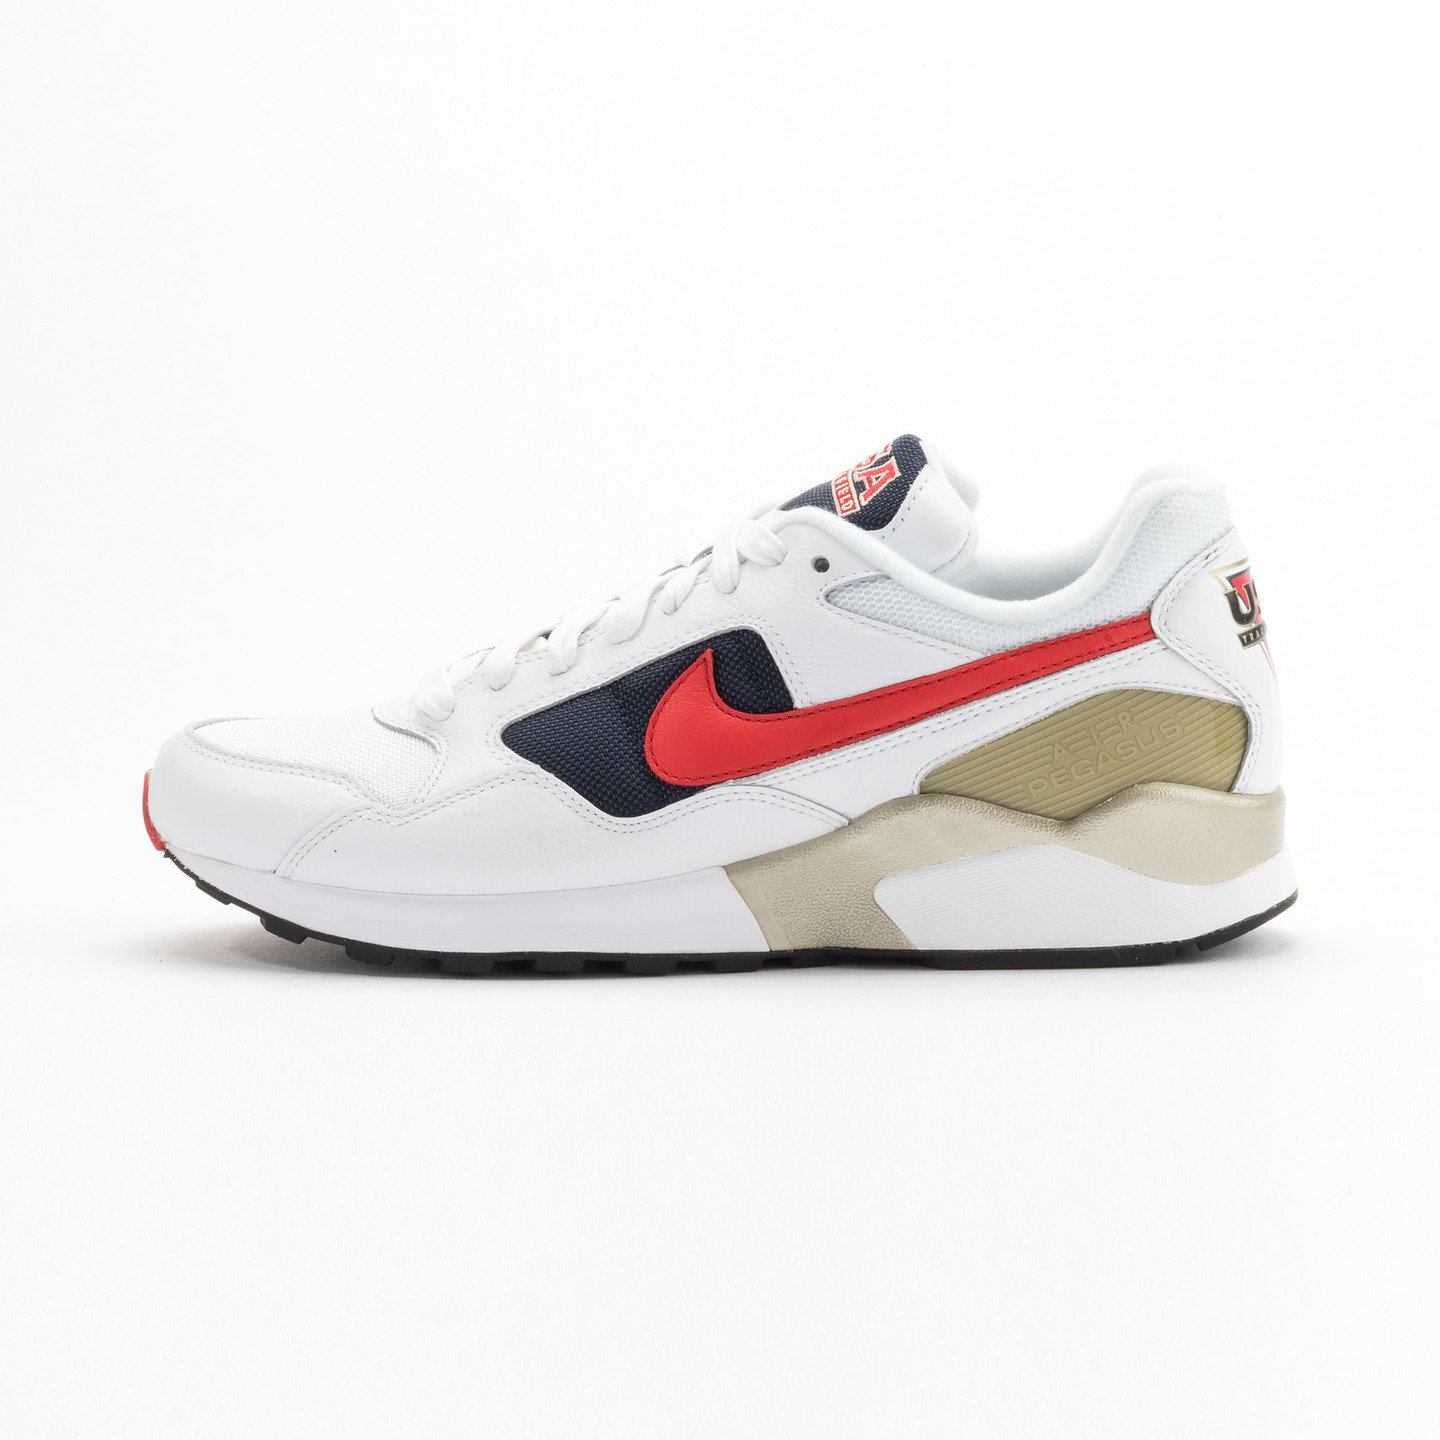 Nike Air Pegasus ´92 Premium White / University Red / Midnight Navy 844964-100-44